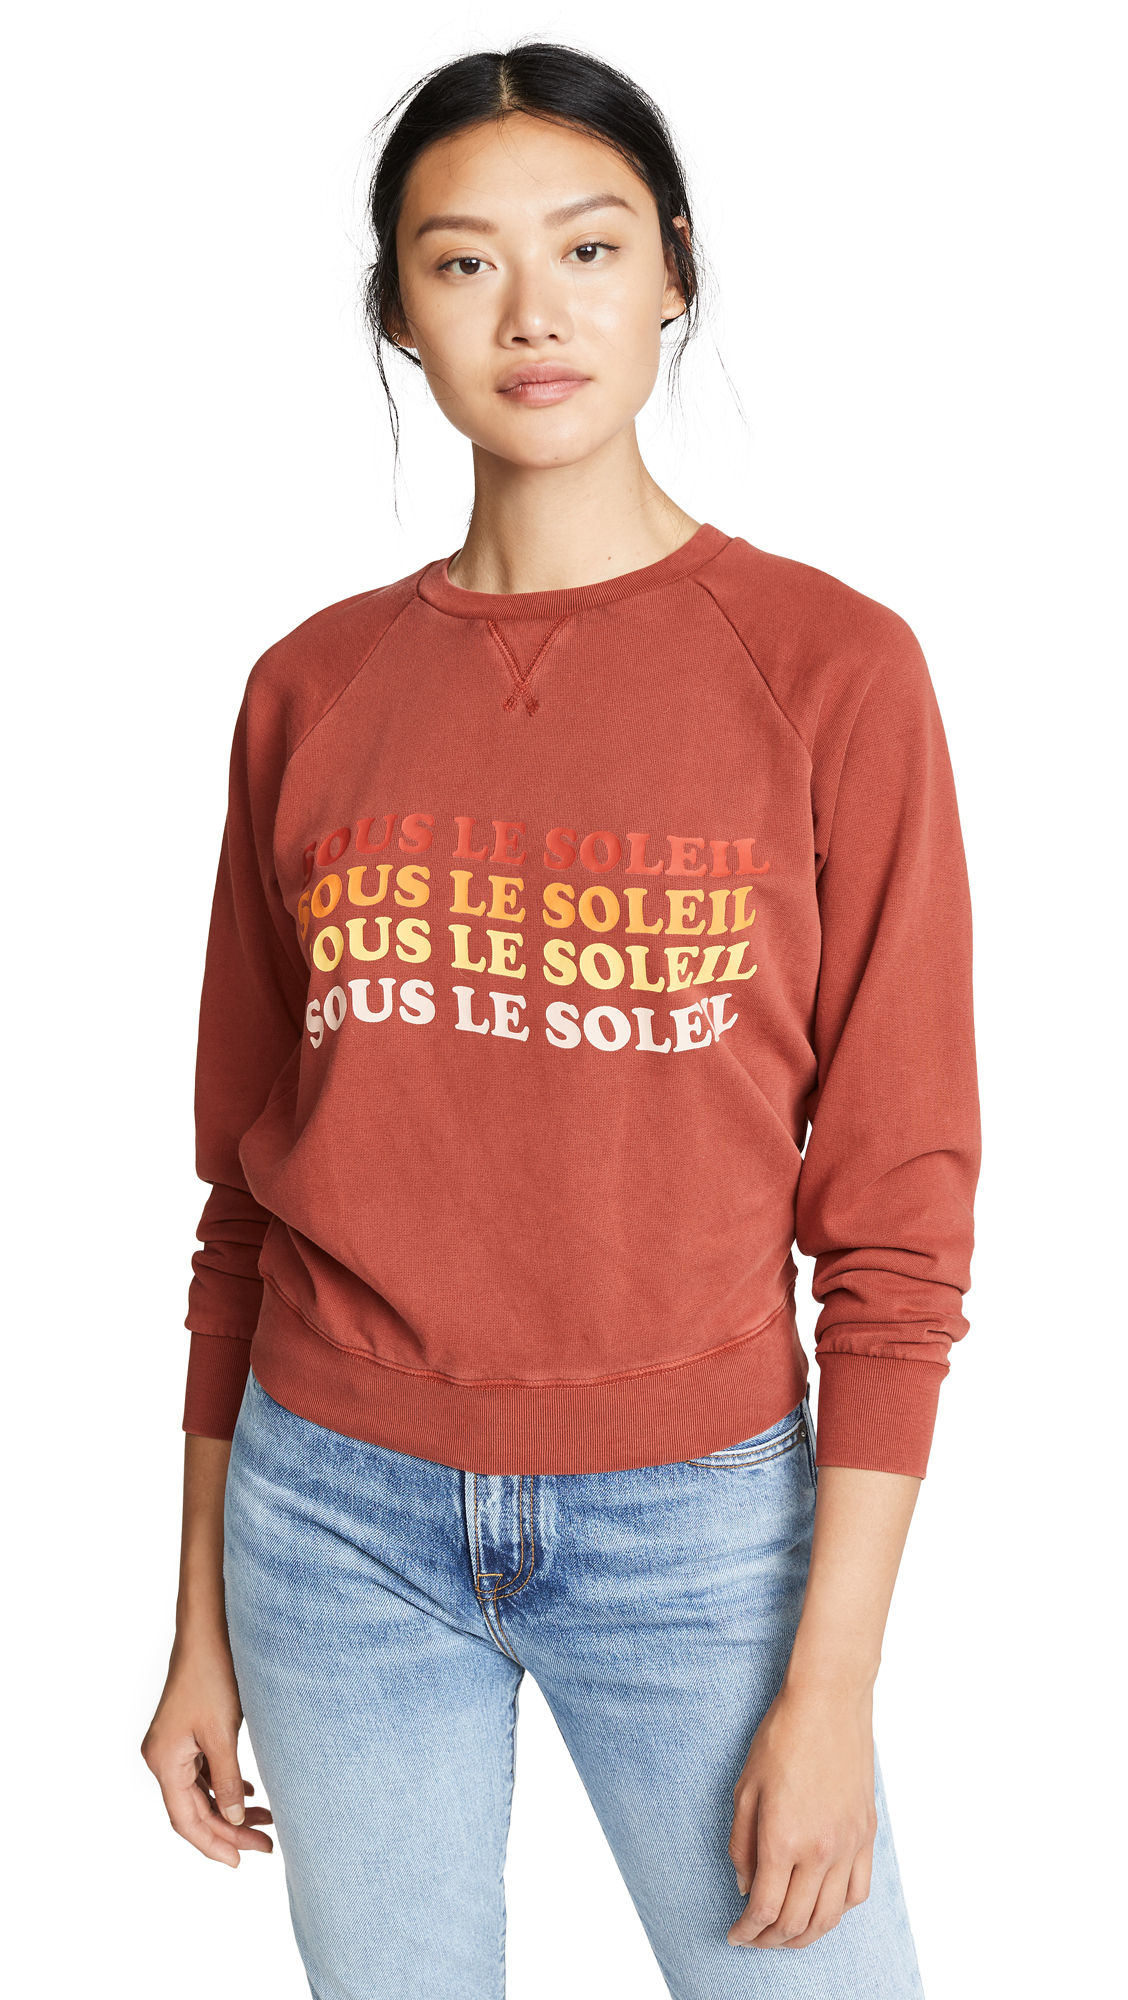 FRAME Sous Le Soleil Sweatshirt In Faded Burnt Henna